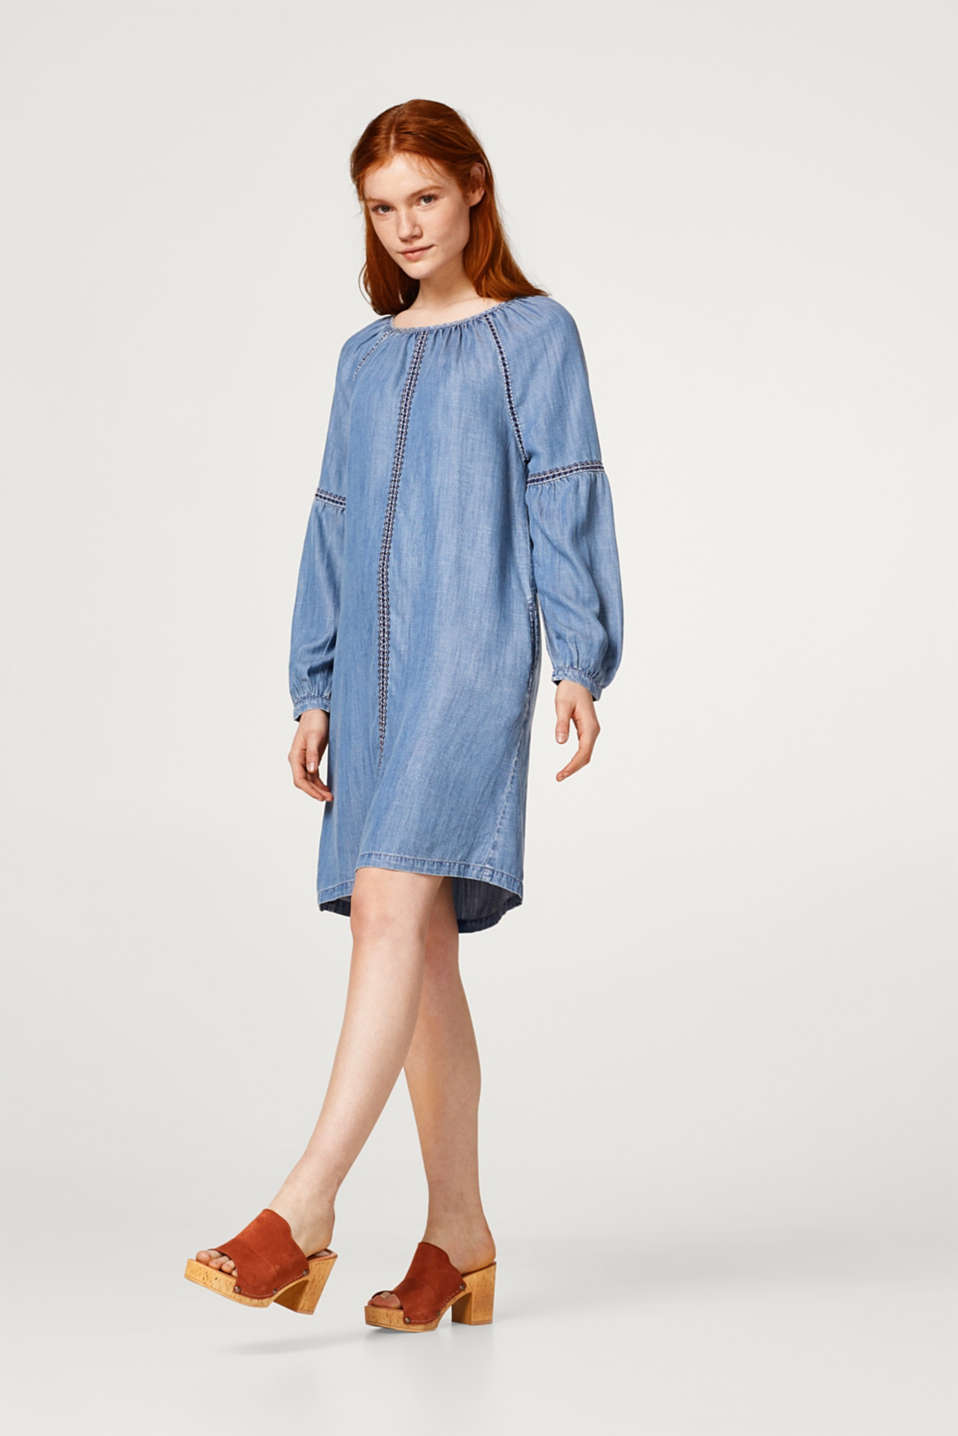 Dress in a denim look with balloon sleeves